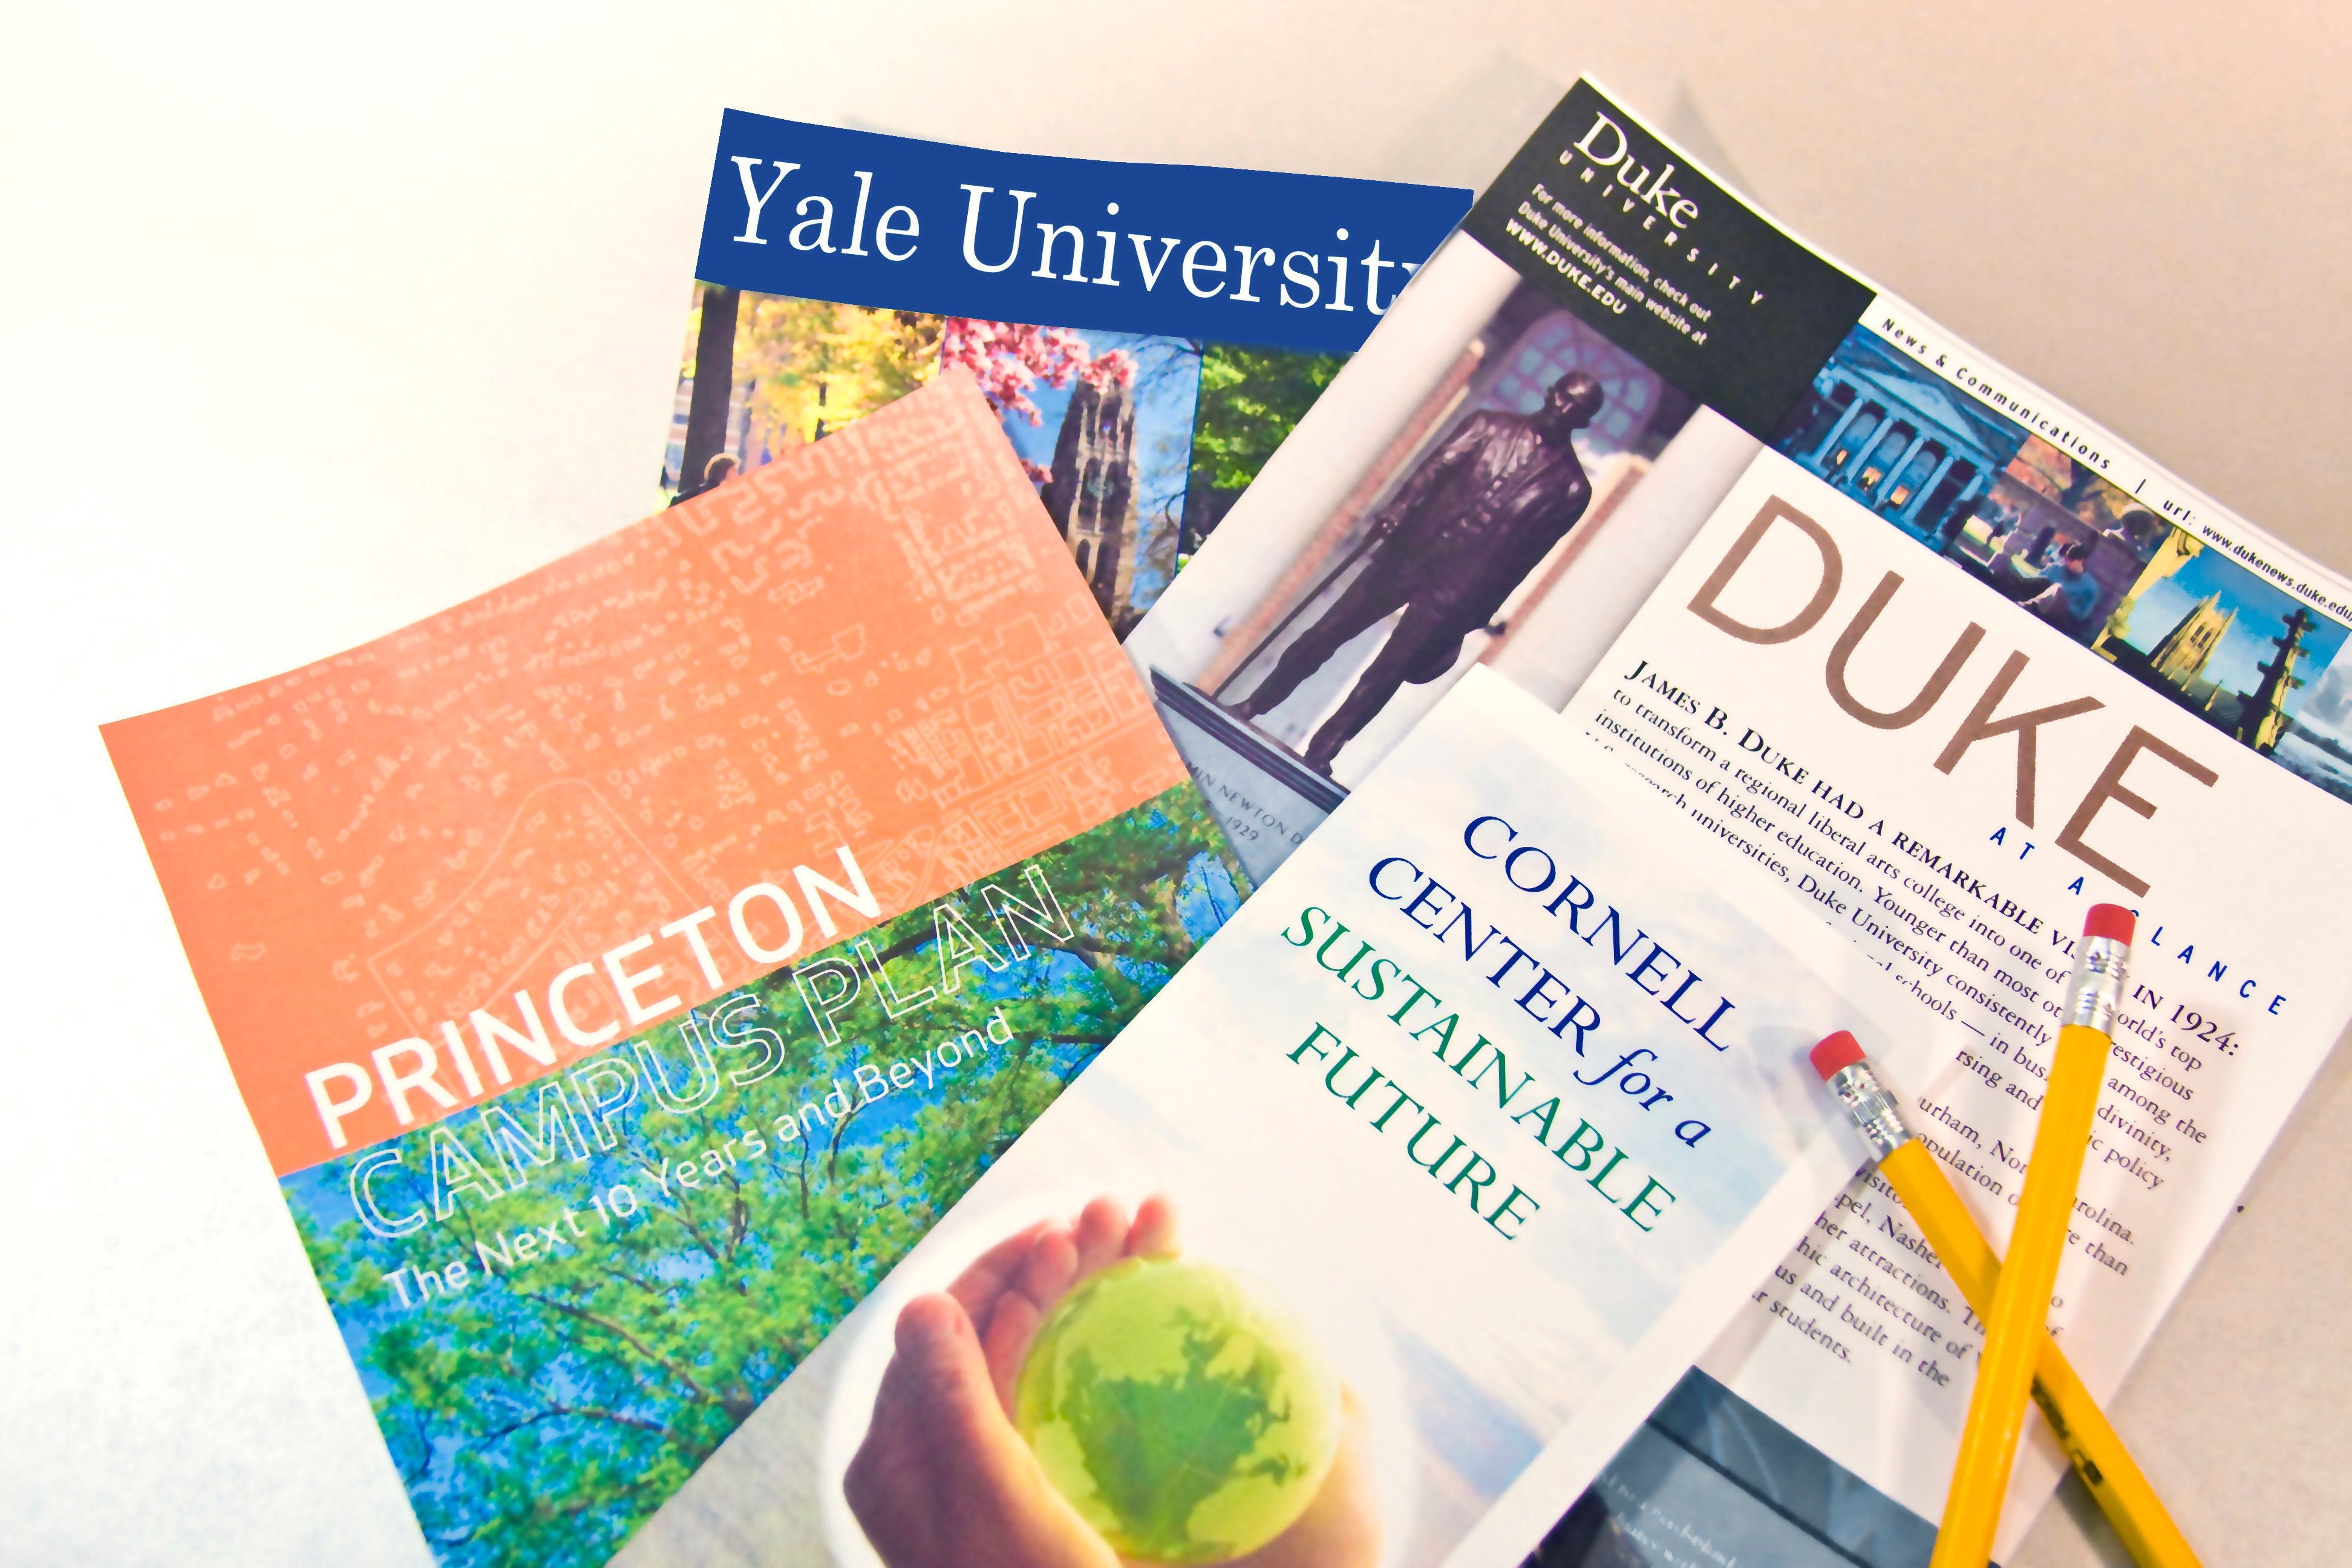 college brochures college planning choosing a college catalogs papers nobody paperwork advertisements for universities duke cornell princeton